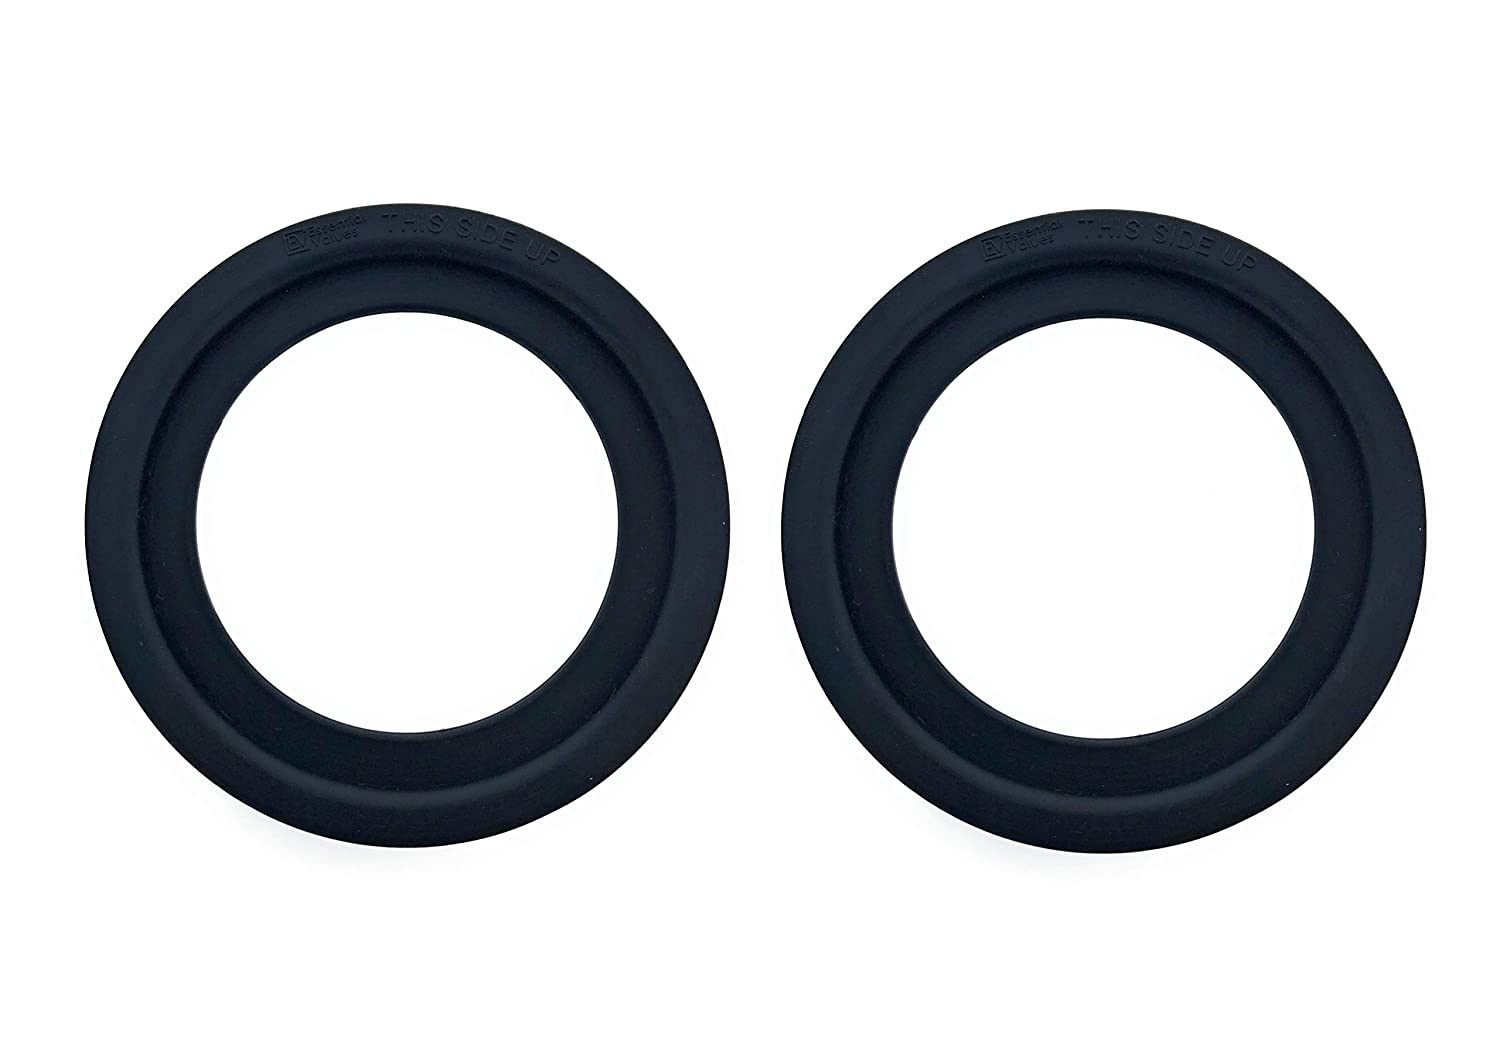 Essential Values 2 Pack Replacement Flush Ball Seal for Dometic RV Toilets Compatible with Models 300//310//320 Equivalent to Part Number 385311658